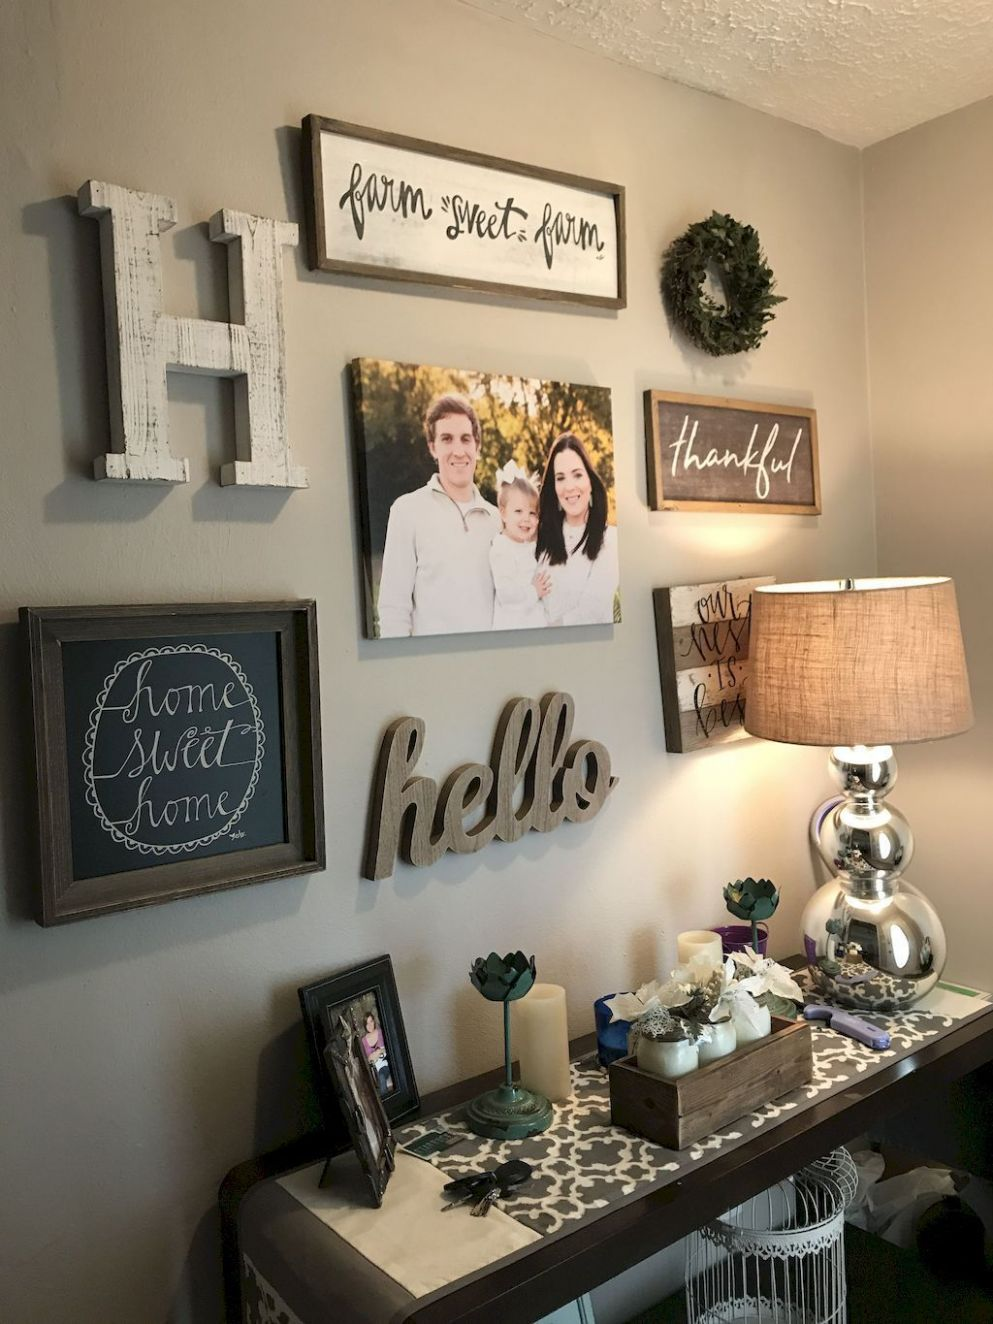 10 inspiring farmhouse entryway decor ideas | Farmhouse decor ...